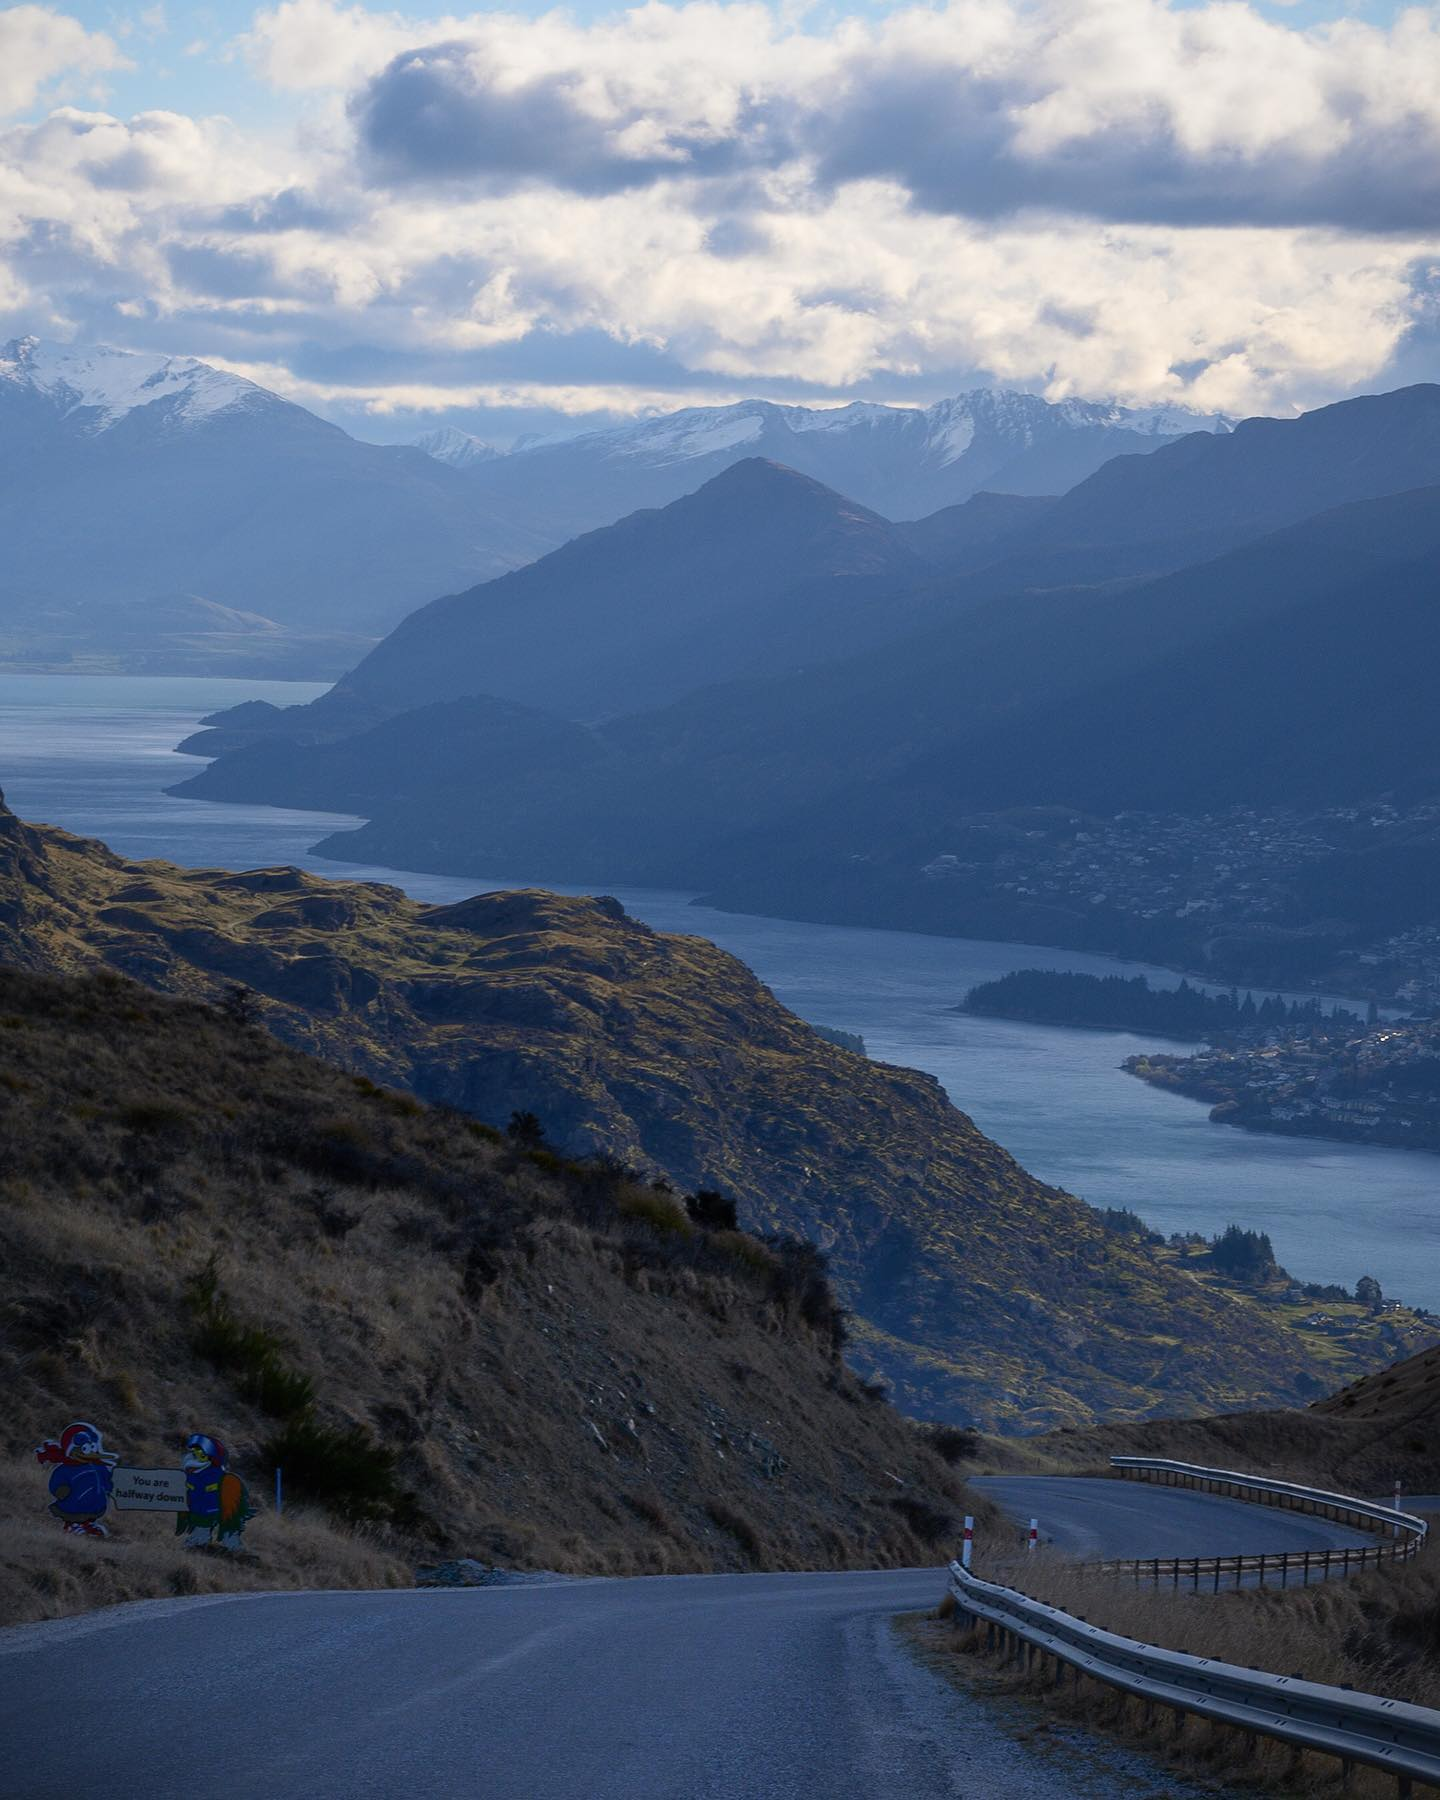 Driving back down from the Remarkables ski resort offers some awesome views over Queenstown (bottom right), Lake Wakatipu, Mount Turnbull (snow top mountain in the background) and the surrounding valley ⛷🌄 . . . . . #queenstown #queenstownlive #lakewakatipu #theremarkablesnz #nzmustdo #purenewzealand #exploremore #ignewzealand #winter #nzgeophoto #nz #nouvellezelande #nztravel #nzgeo #nikonnz #queenstownnz #southisland #nzlandscapes #discovernz #southernalps #adventure #nzlandscapephotography #nztravelmagazine #nzdailyshot #nzstuff  #theremarkables #nzsouthisland #aotearoa #nouvellezélande